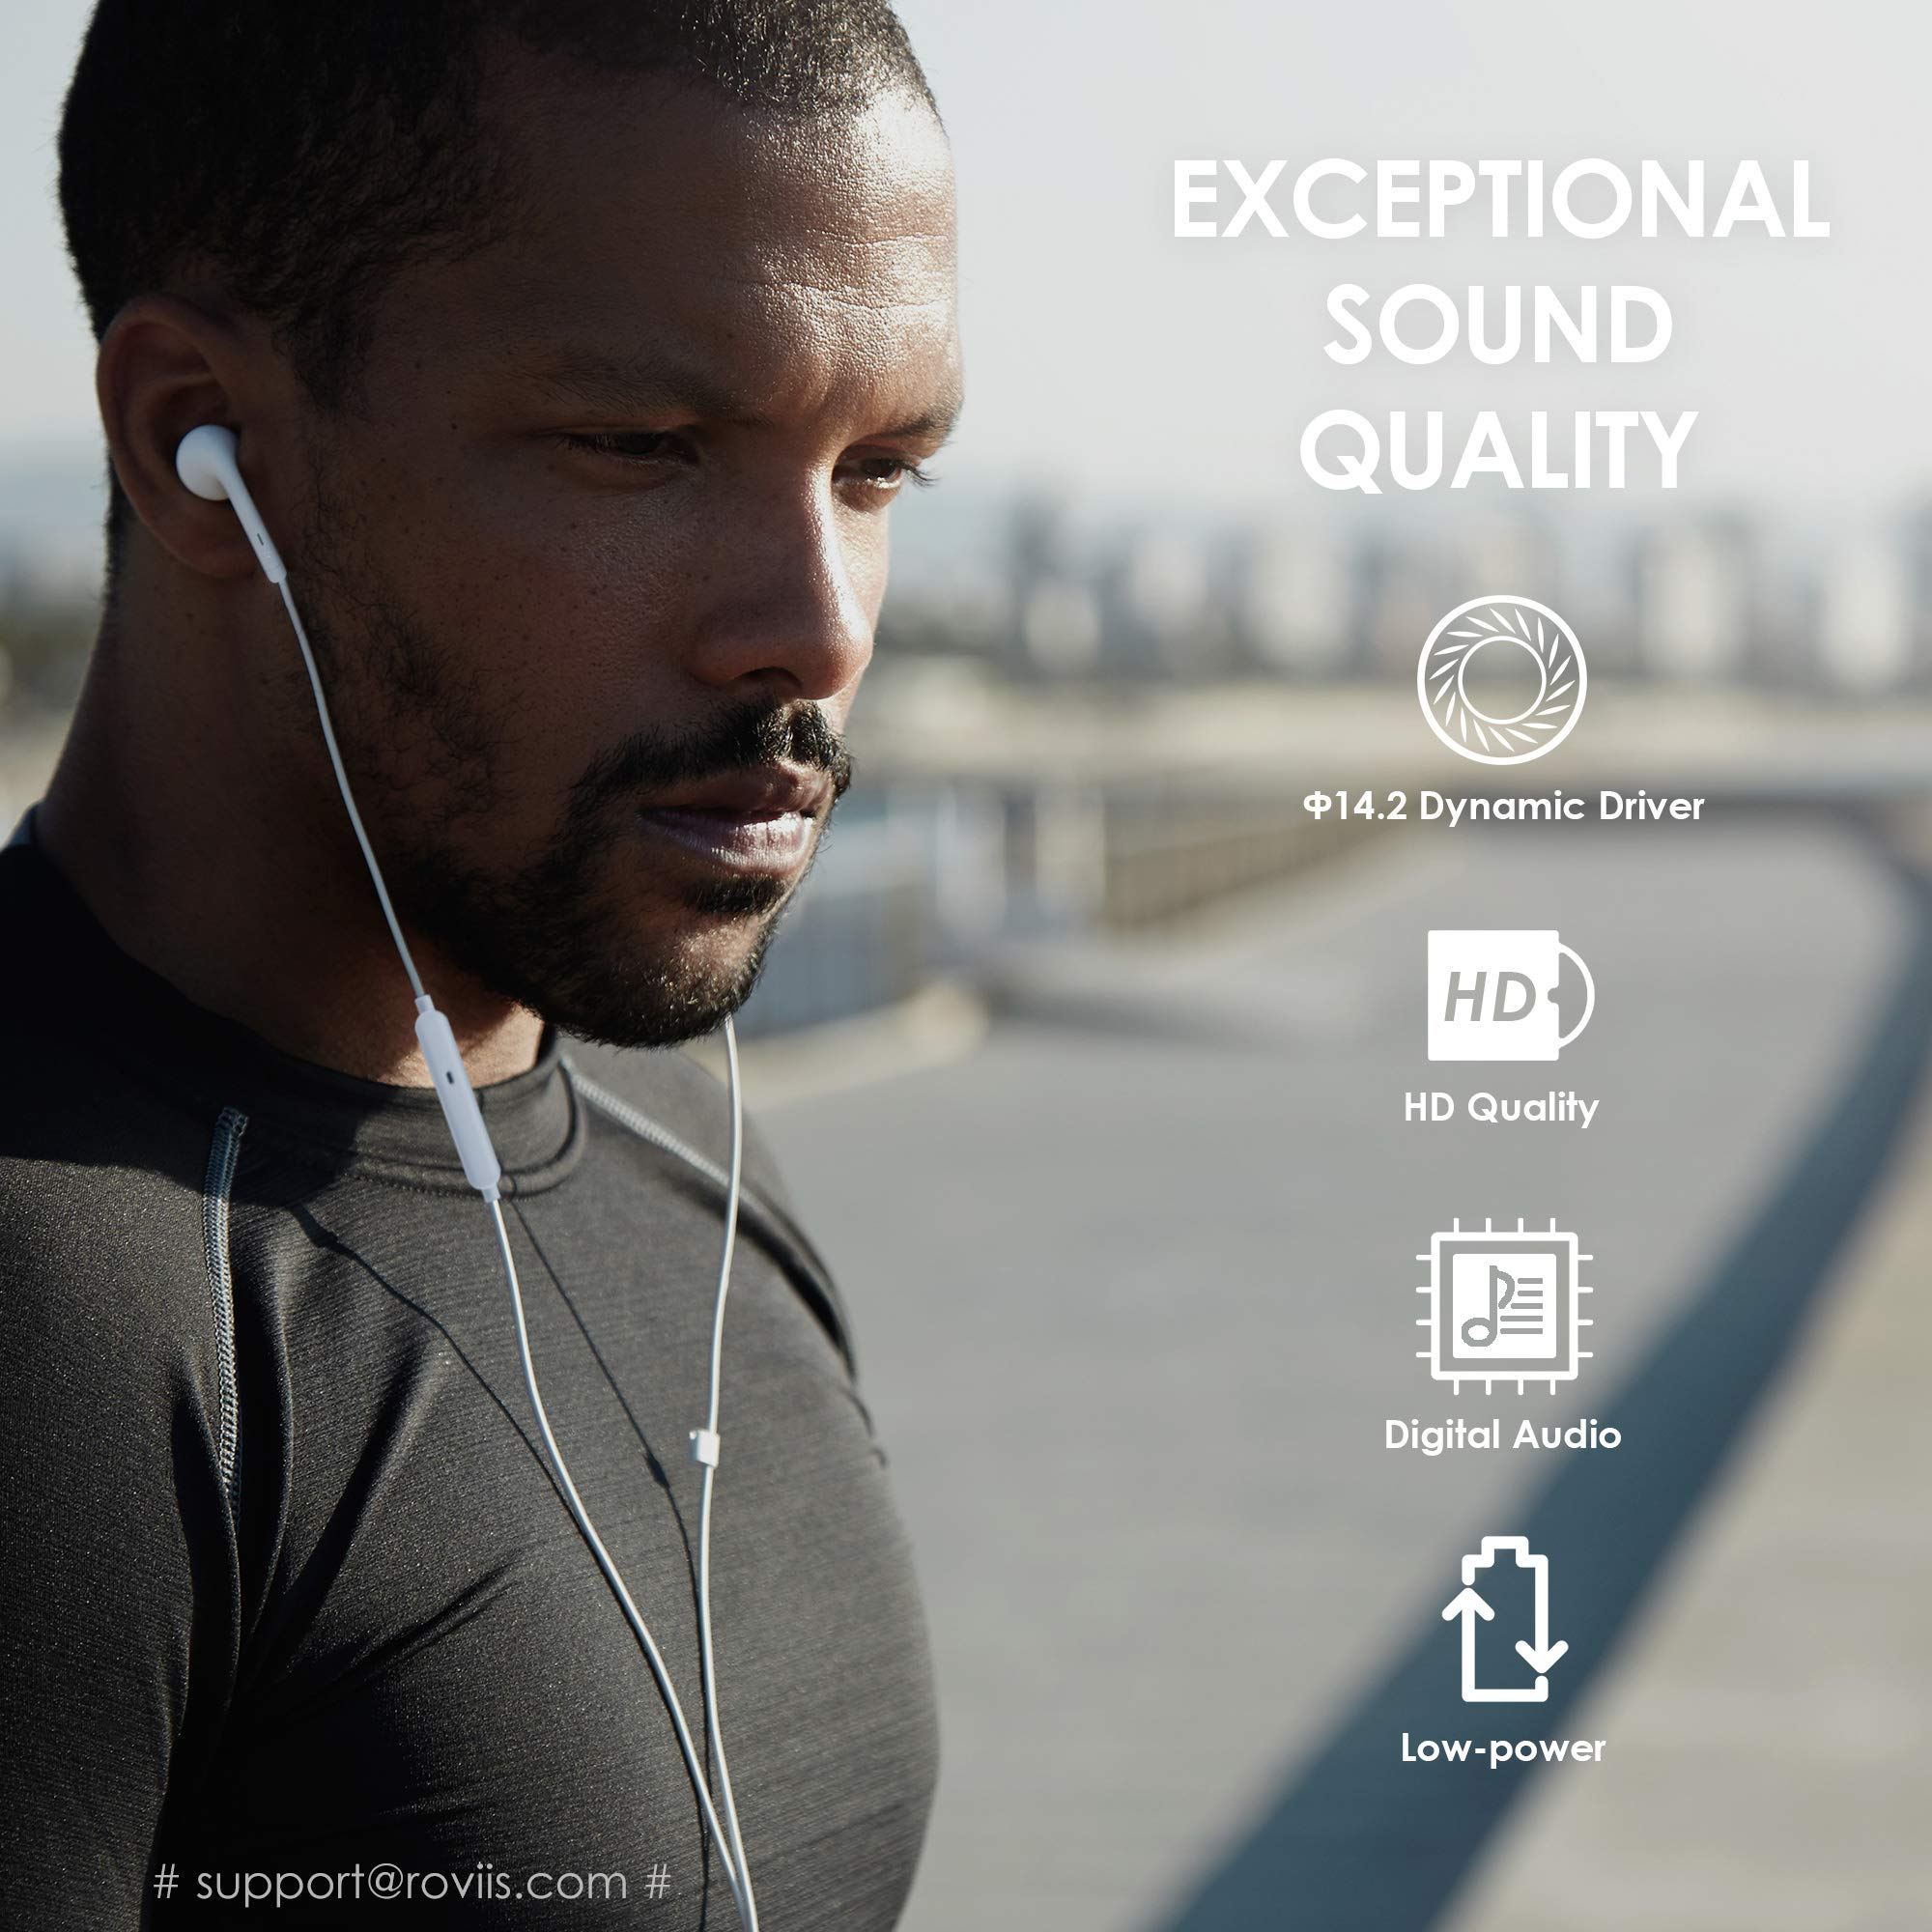 Lightning Headphones Earphones Earbuds with Microphone and Remote Control, MFi-Certified, Compatible with iPhone X/XS/Xs Max/XR iPhone 8/P iPhone 7/P, in-Ear, ROVIIS R1 by ROVIIS (Image #4)